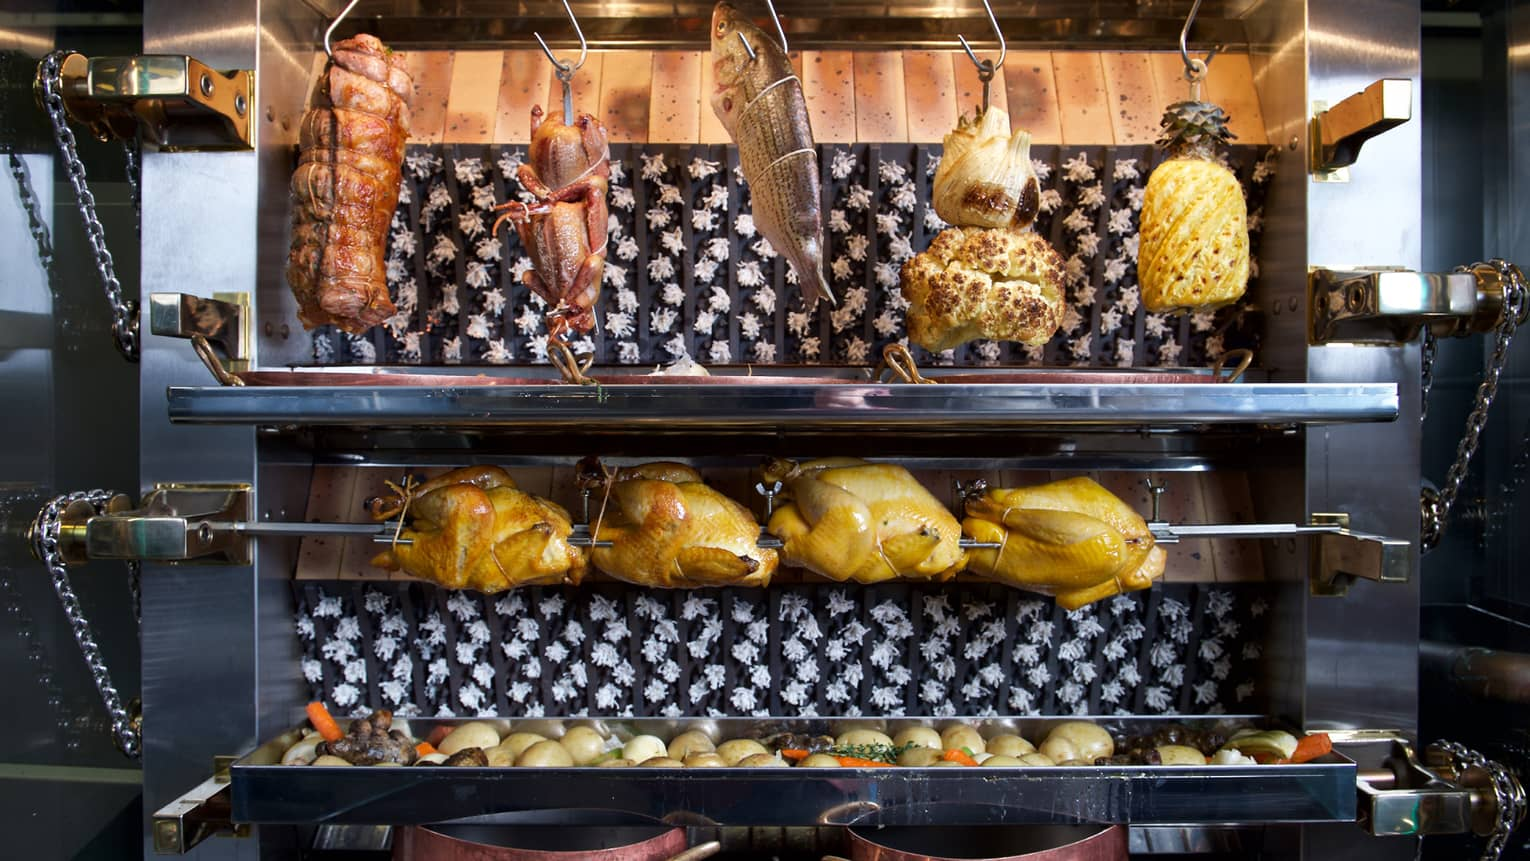 Whole chickens on rotisserie under whole fish, cauliflower hanging from hooks